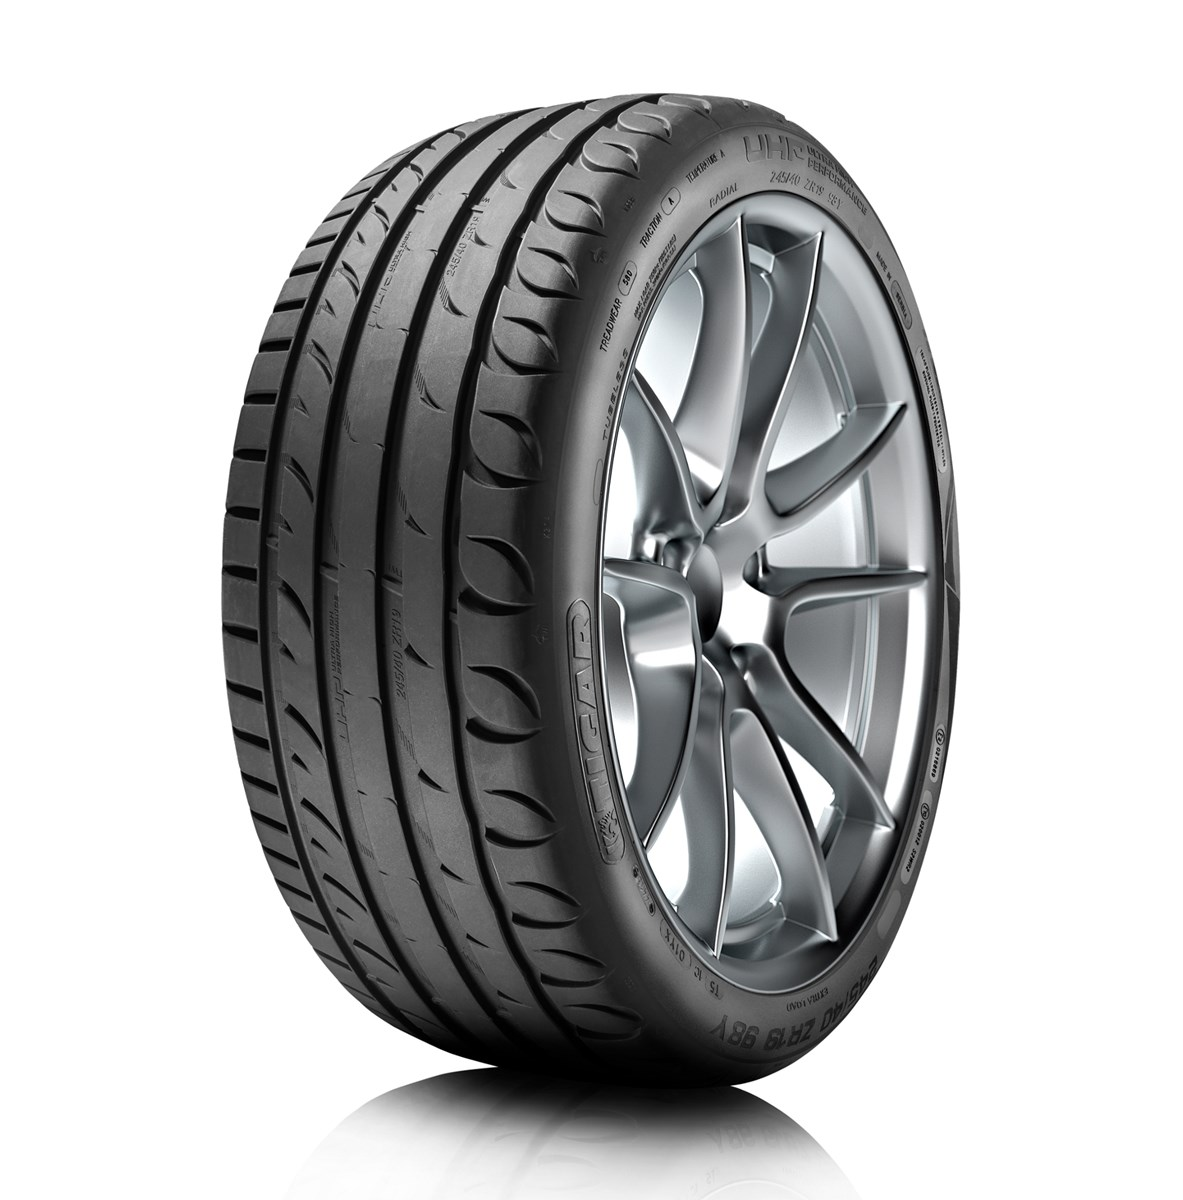 Pneu 215/45R16 90V TIGAR HIGH PERFORMANCE